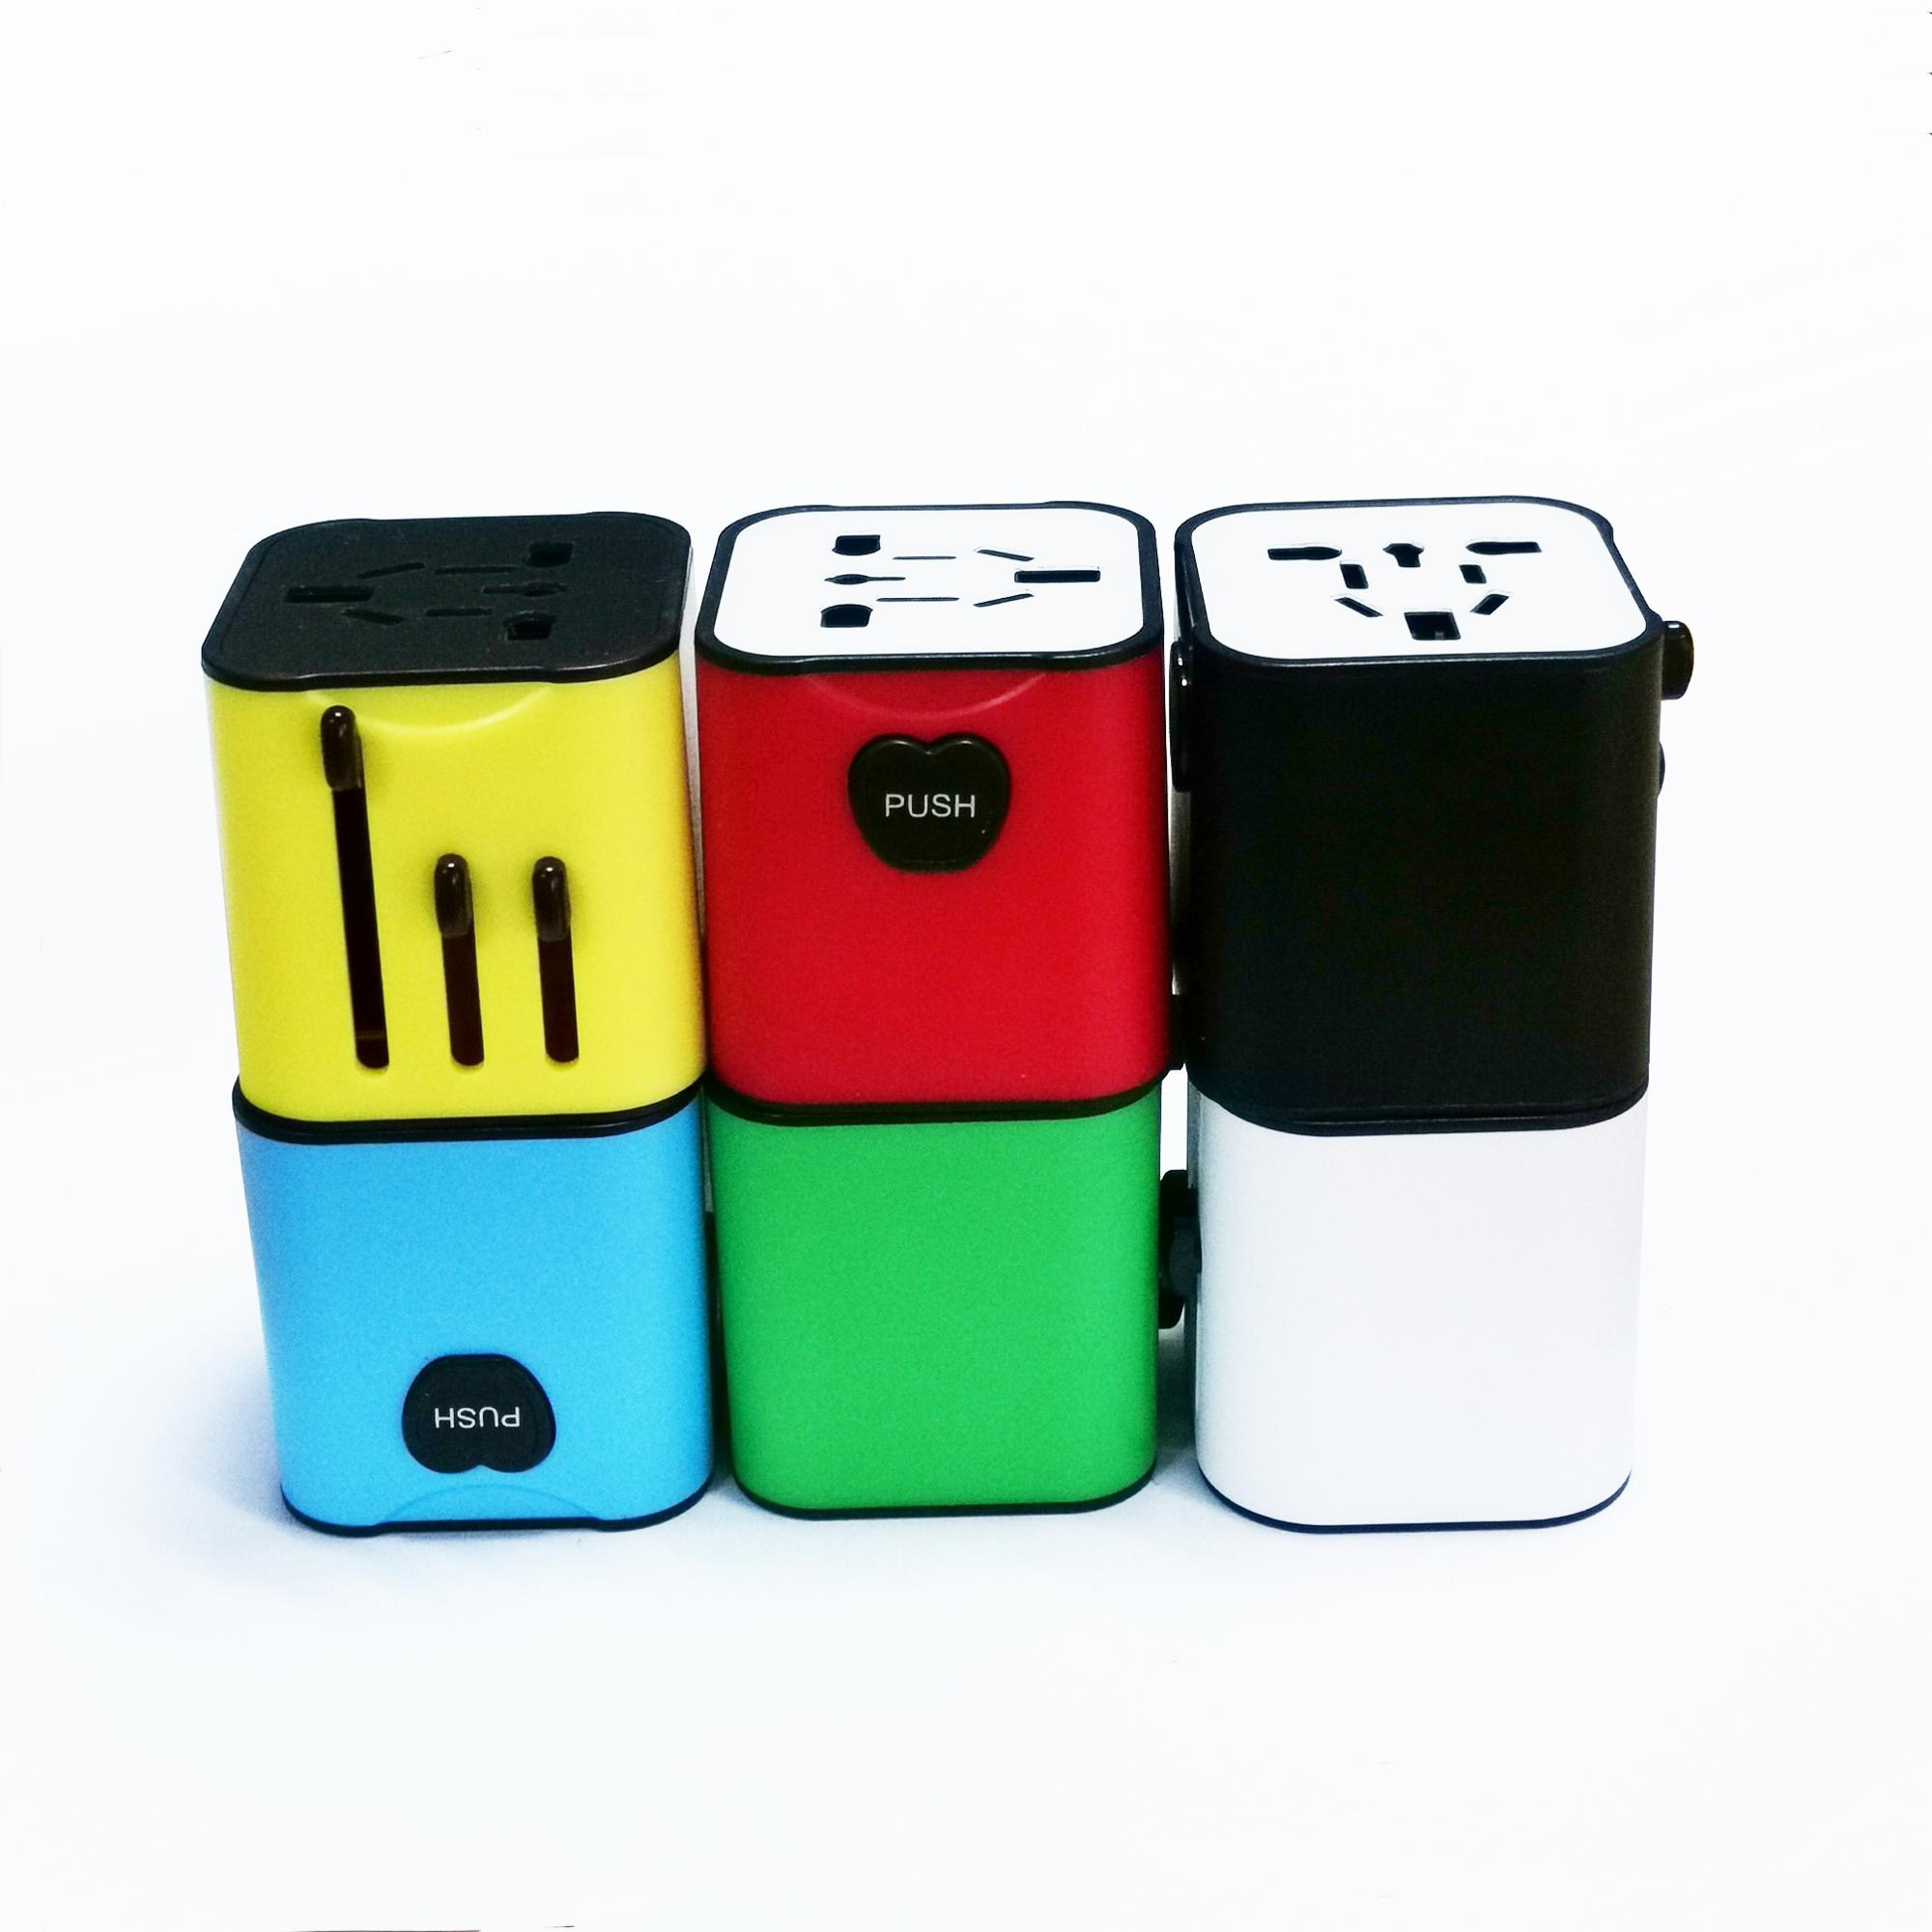 Lightening LOGO 3.1A Travel Adapter with 2 USB Port for Worldwide Use/ World Travel Power Adaptor/ Thailand Travel Plug Adapter